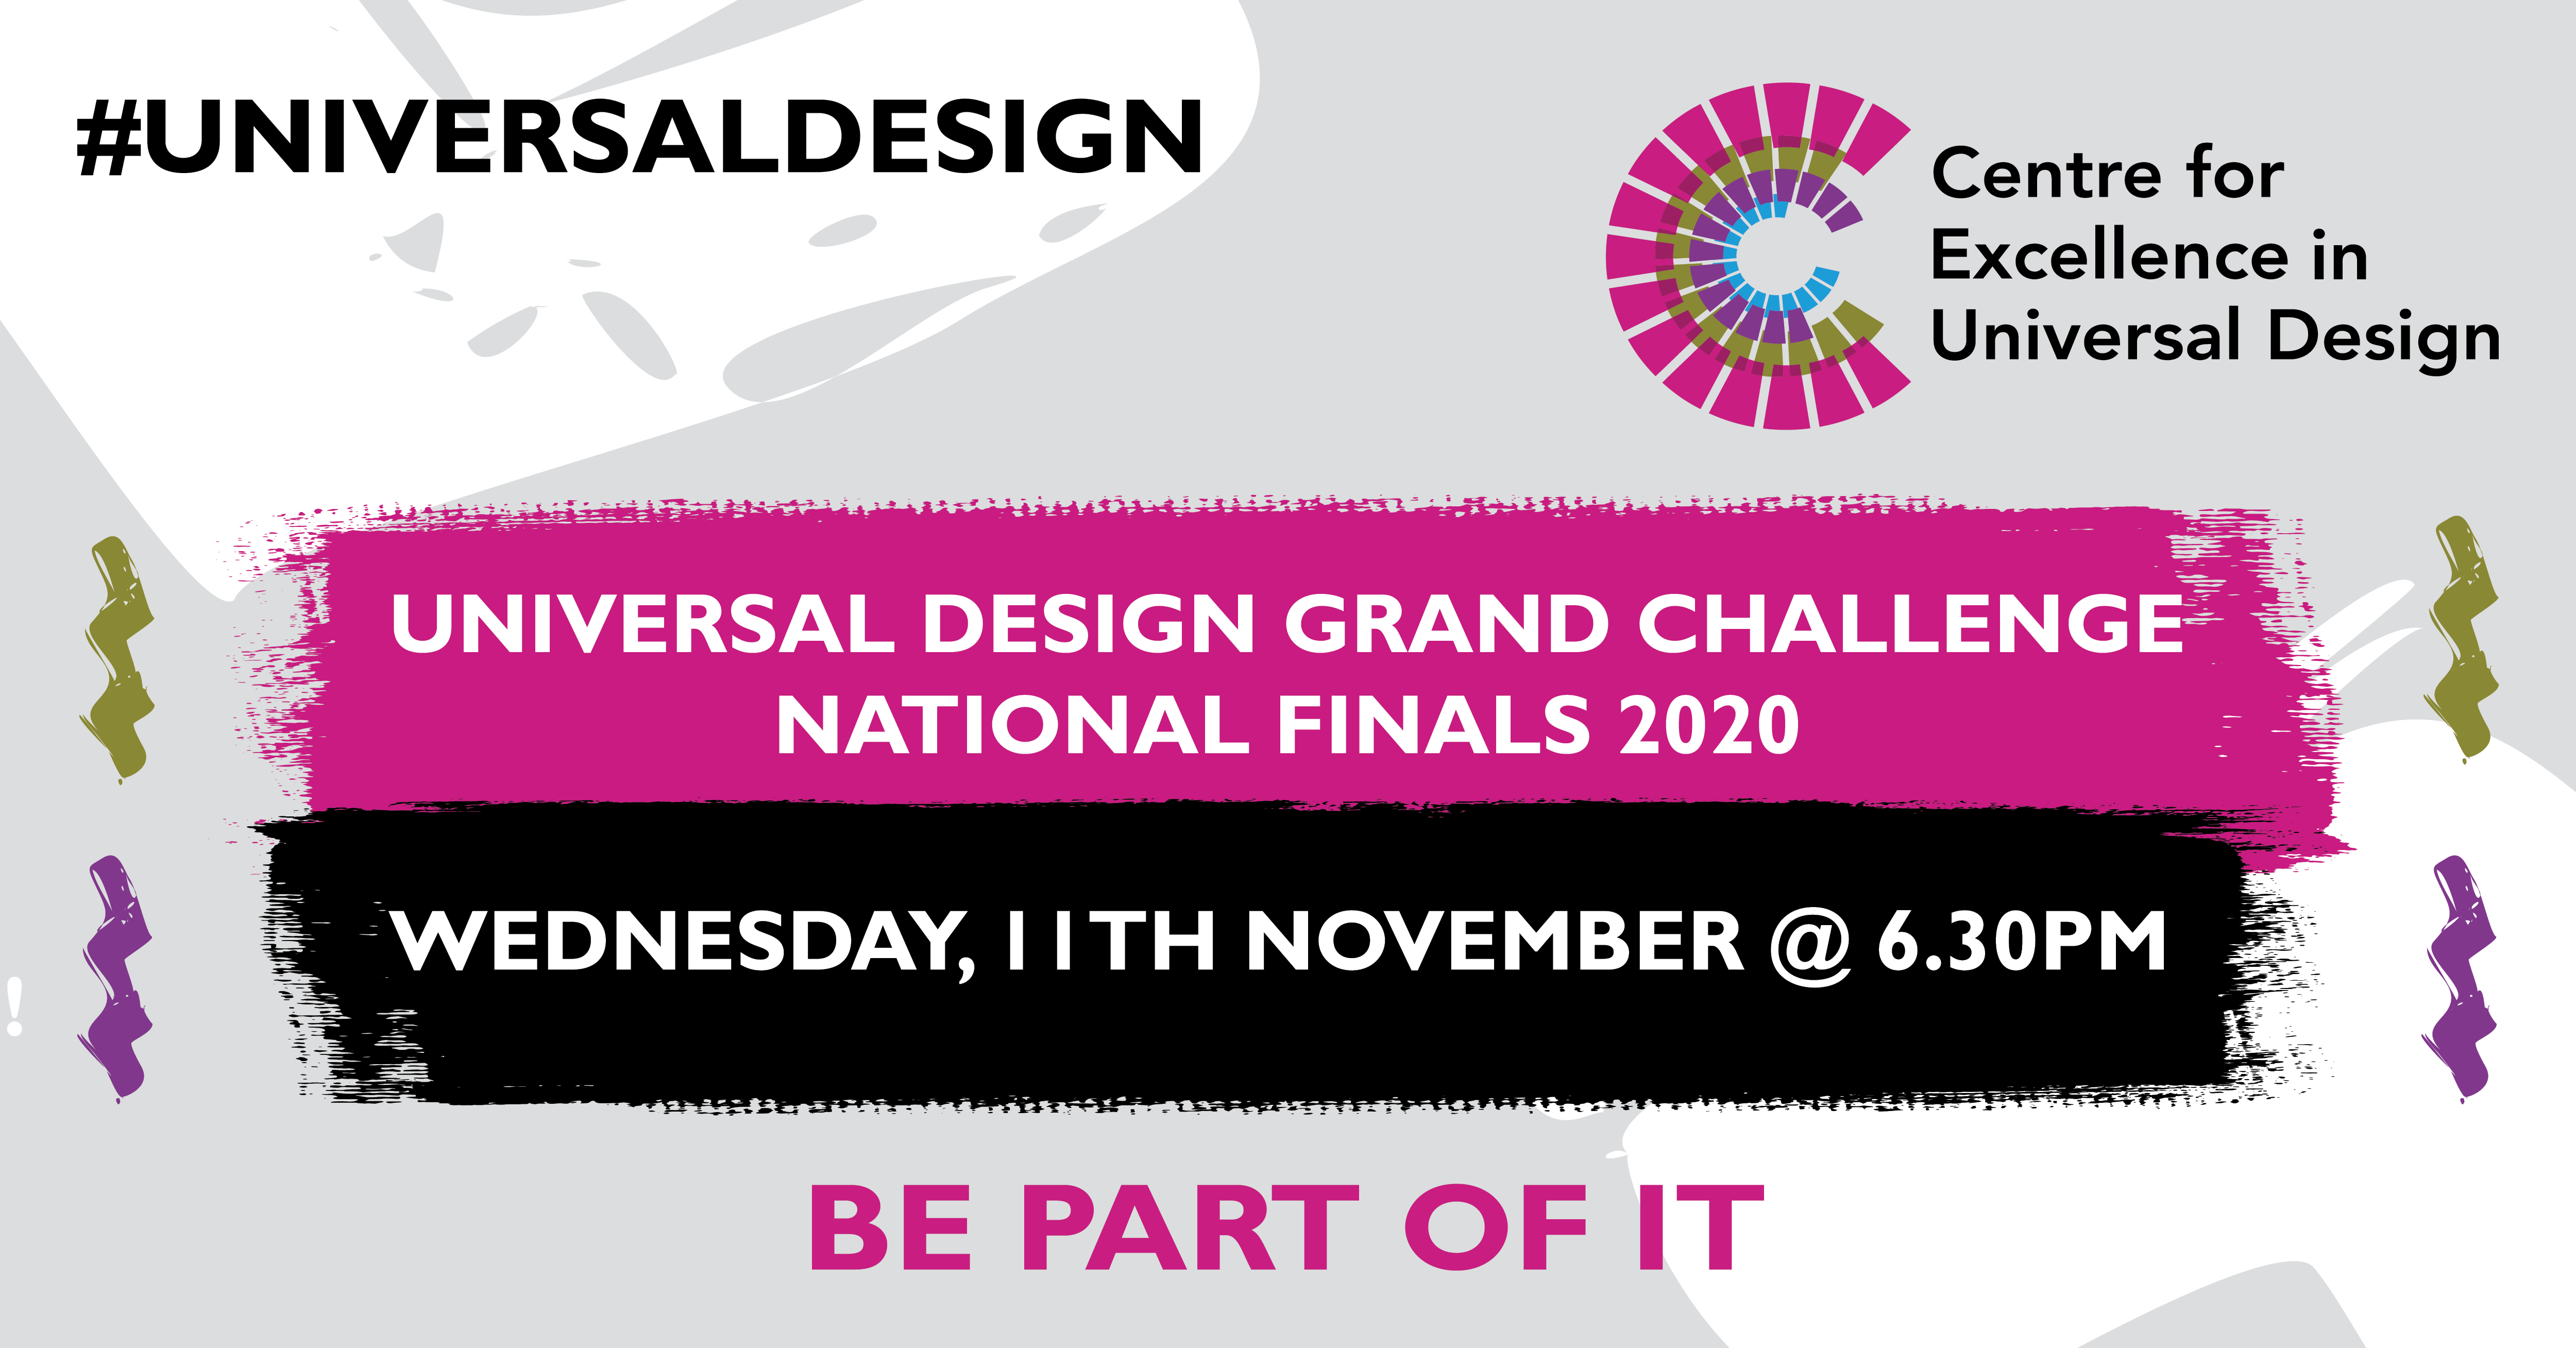 Universal Design Grand Challenge National Finals